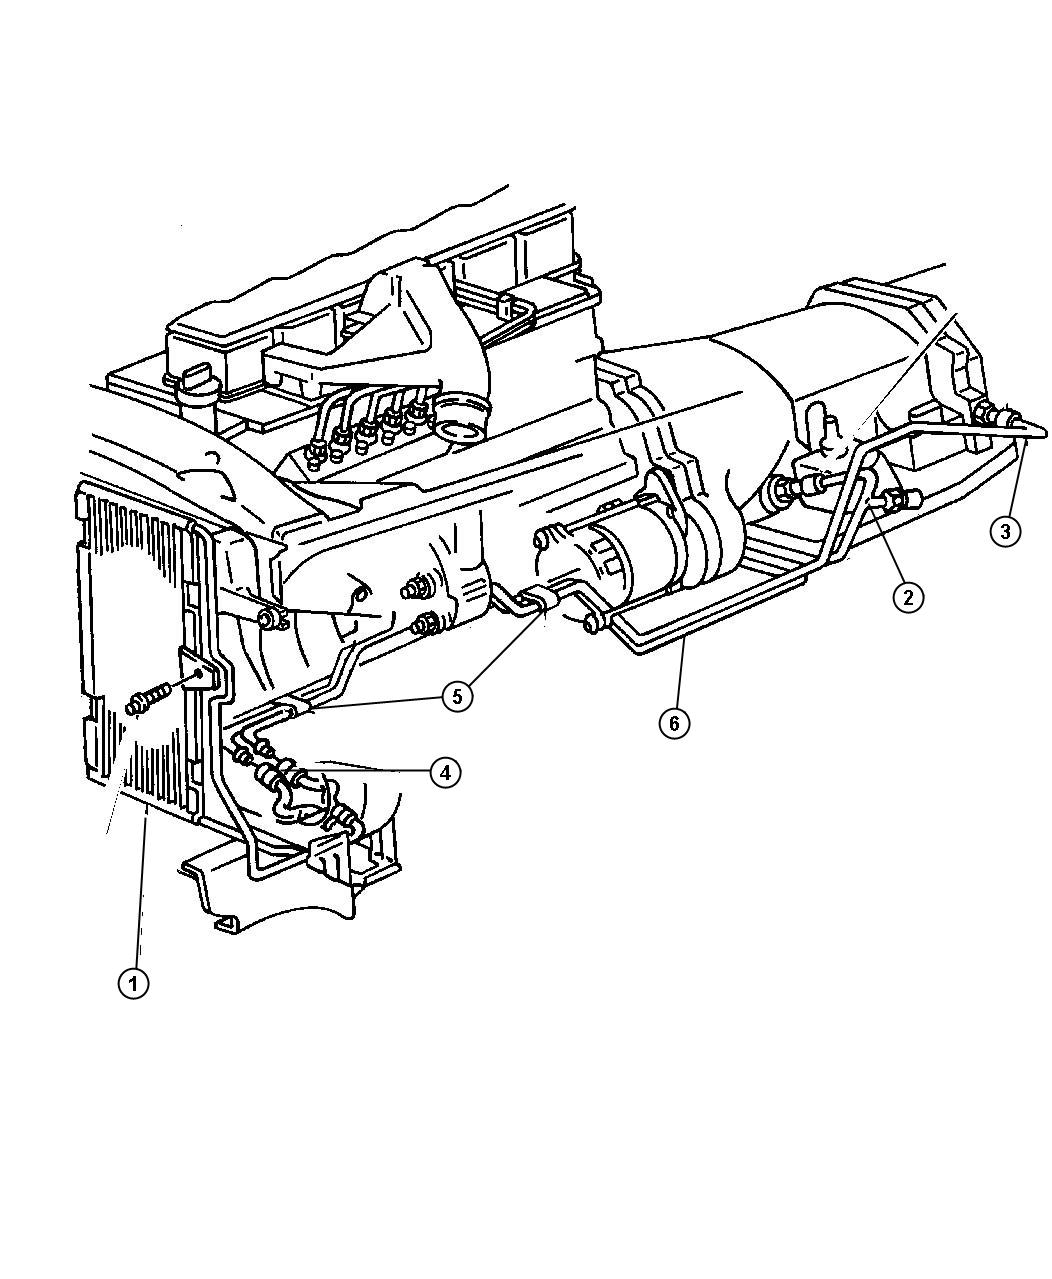 00i52608 wiring diagrams for 2005 dodge ram 1500 the wiring diagram 1999 dodge ram 1500 transmission wiring diagram at gsmportal.co